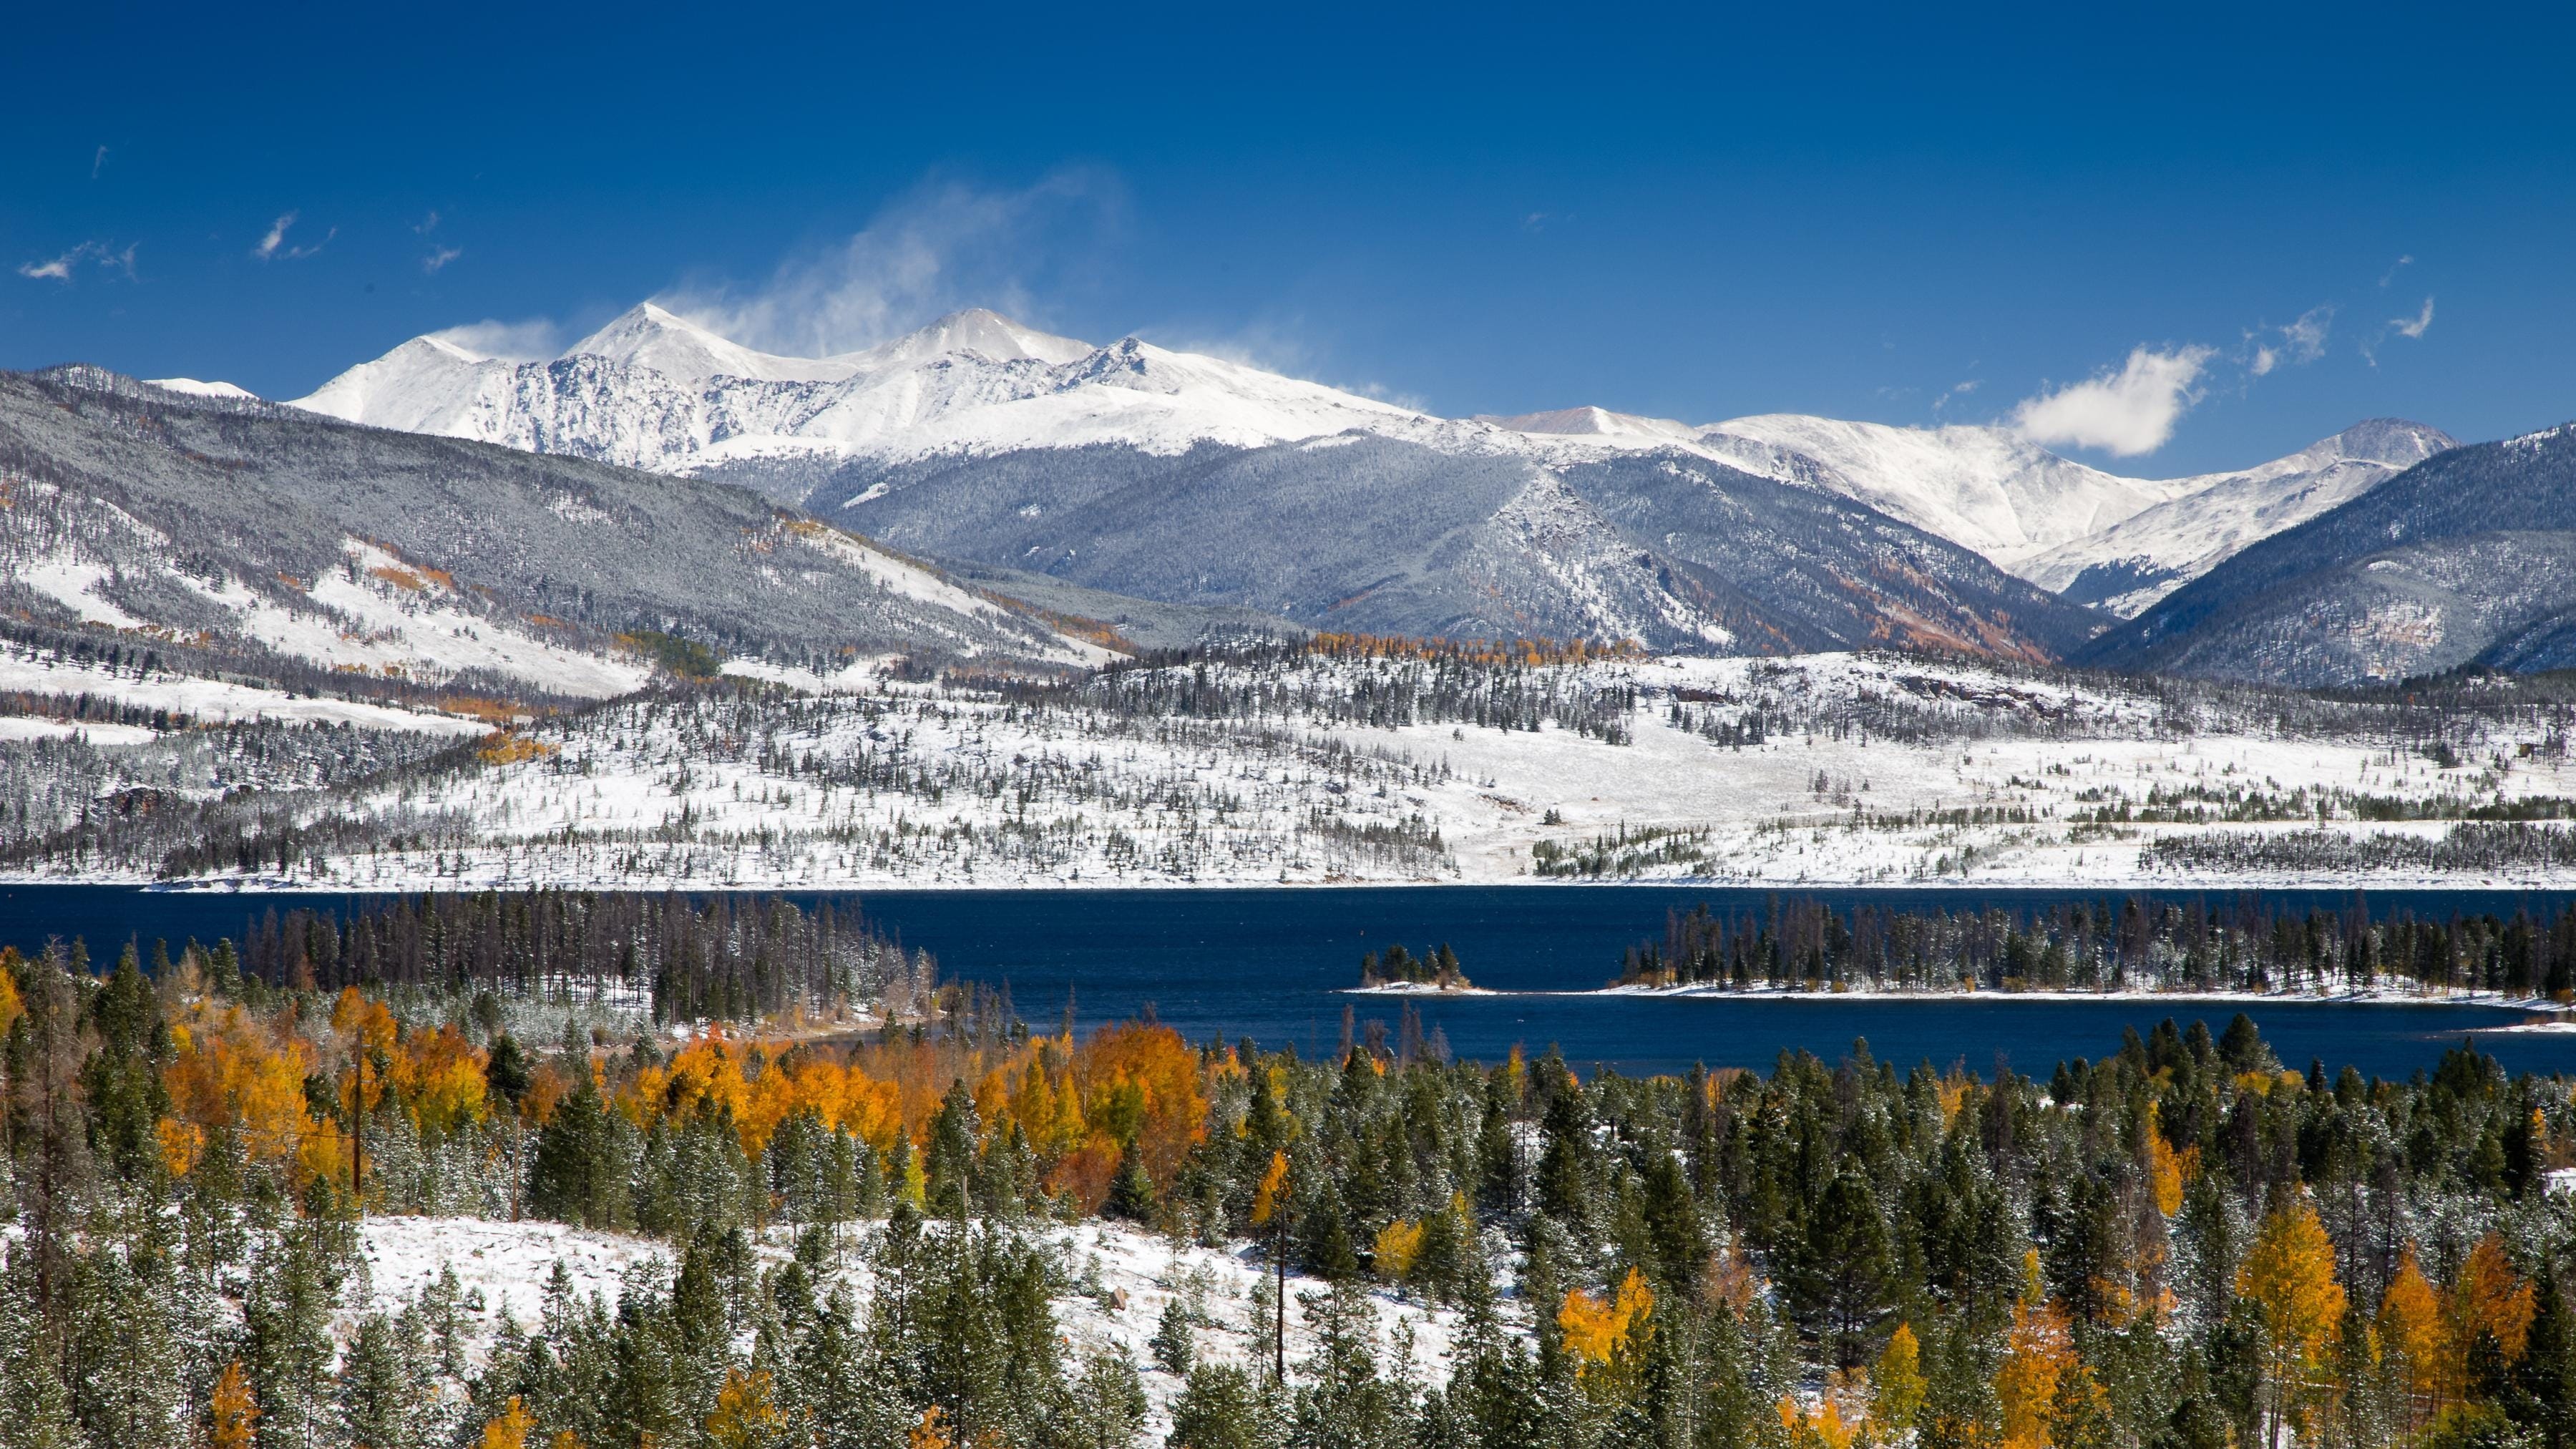 You'll be a short drive from 3 epic ski resorts including Keystone (18 minutes), Copper Mountain (20 minutes), and Breckenridge (30 minutes).